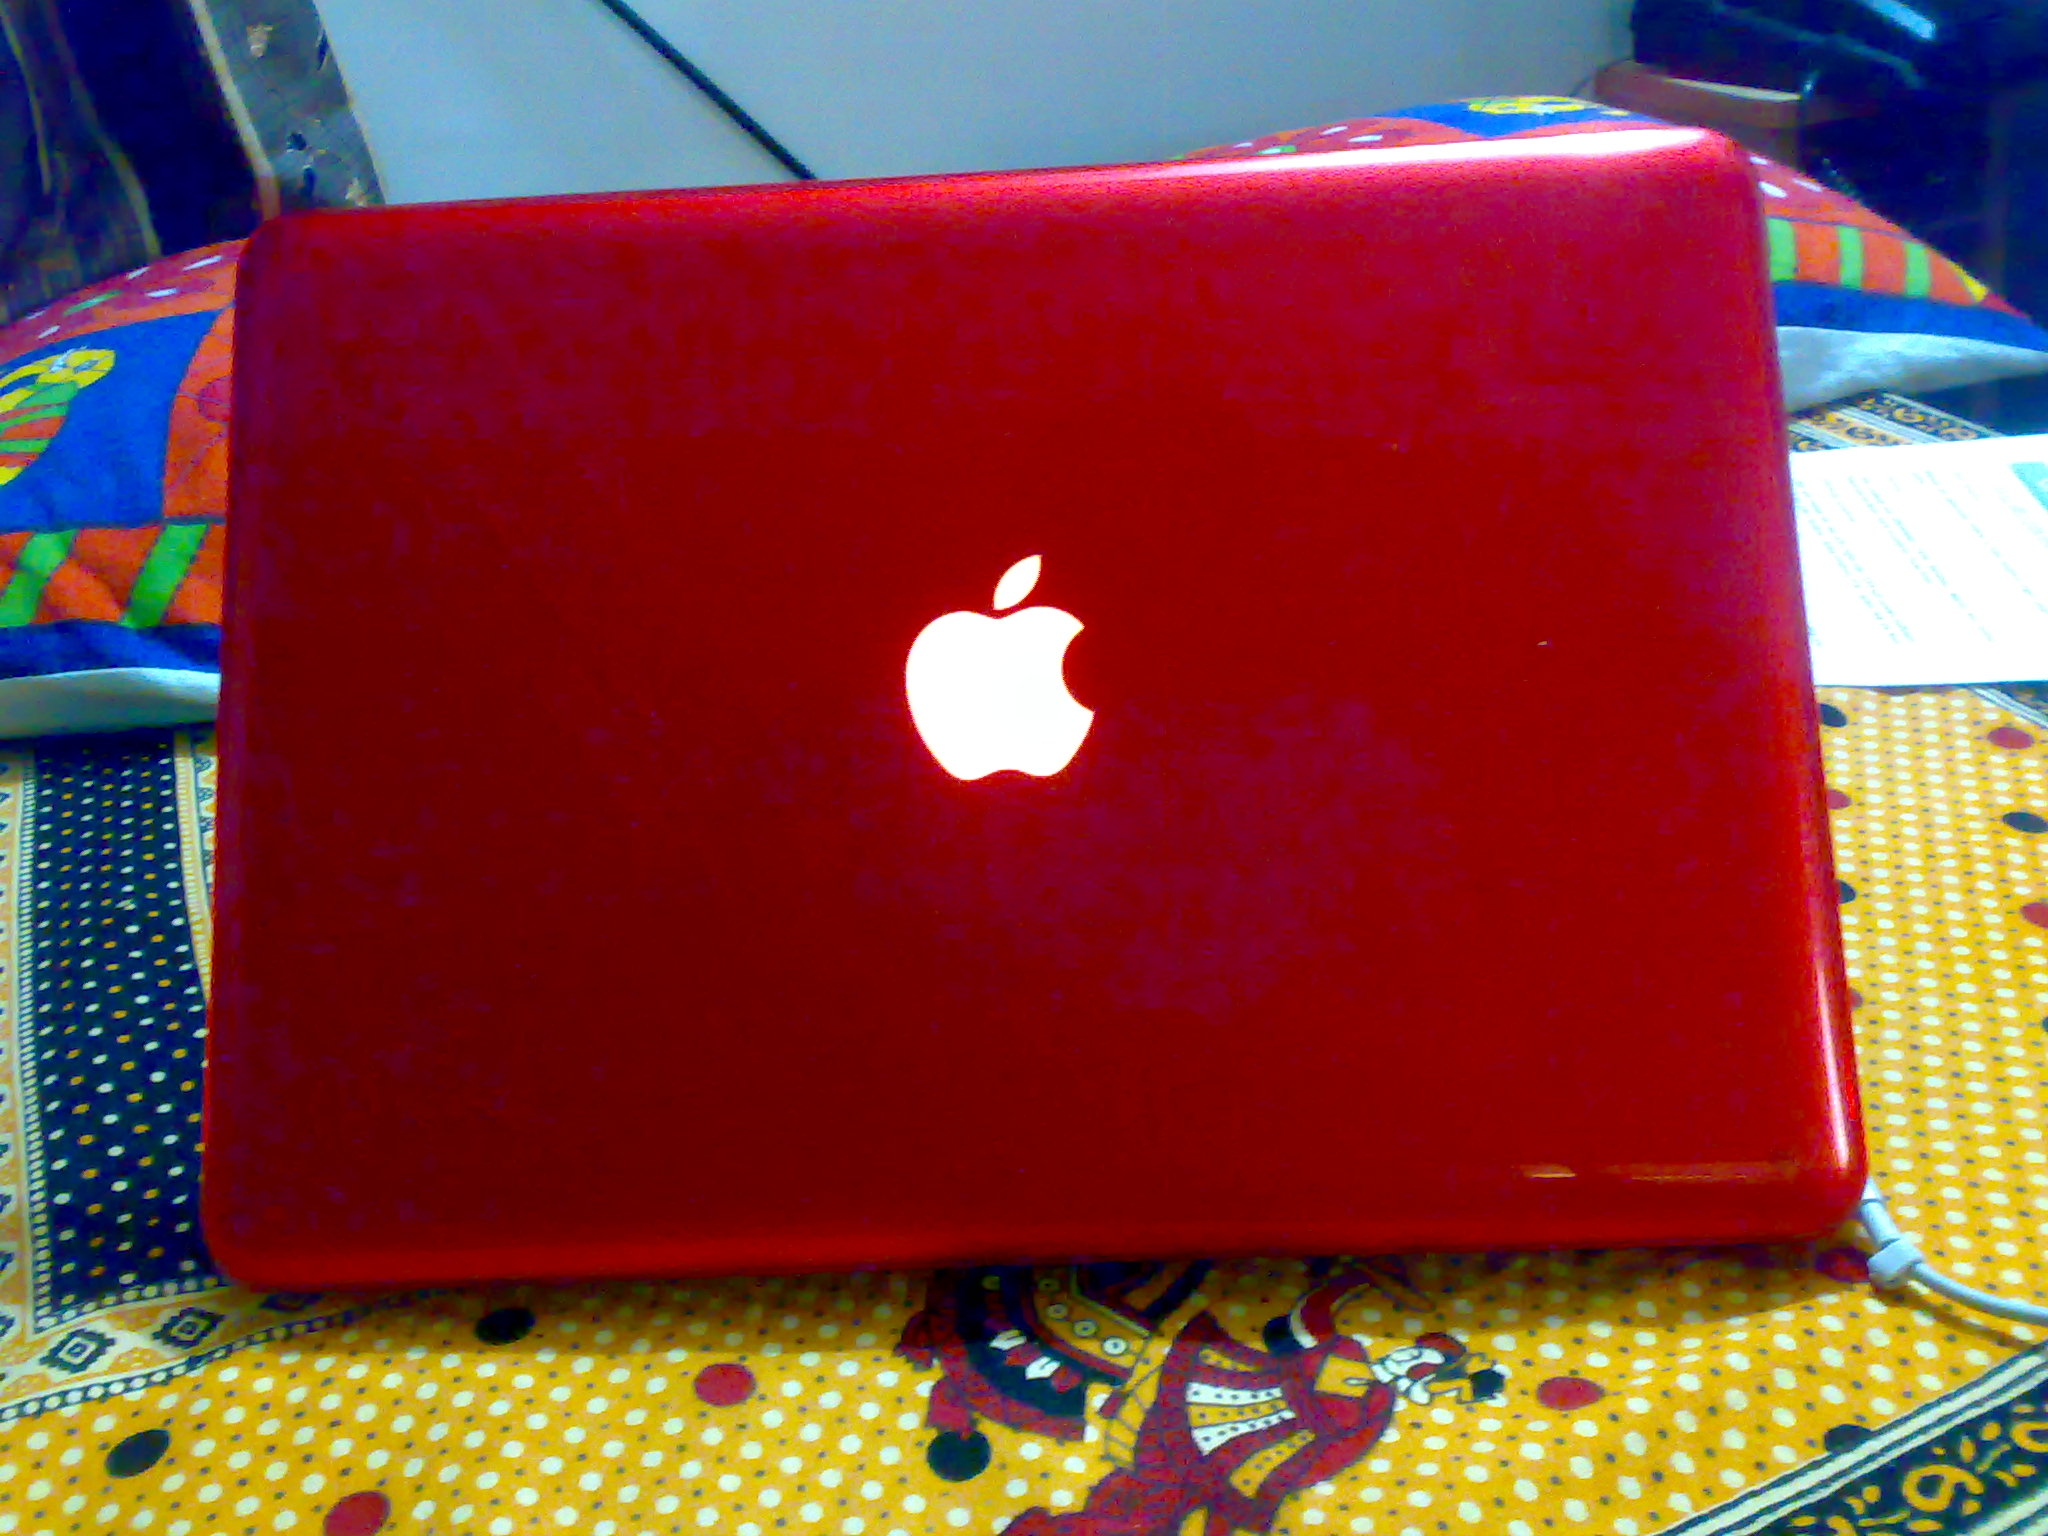 Macbook pro for students india